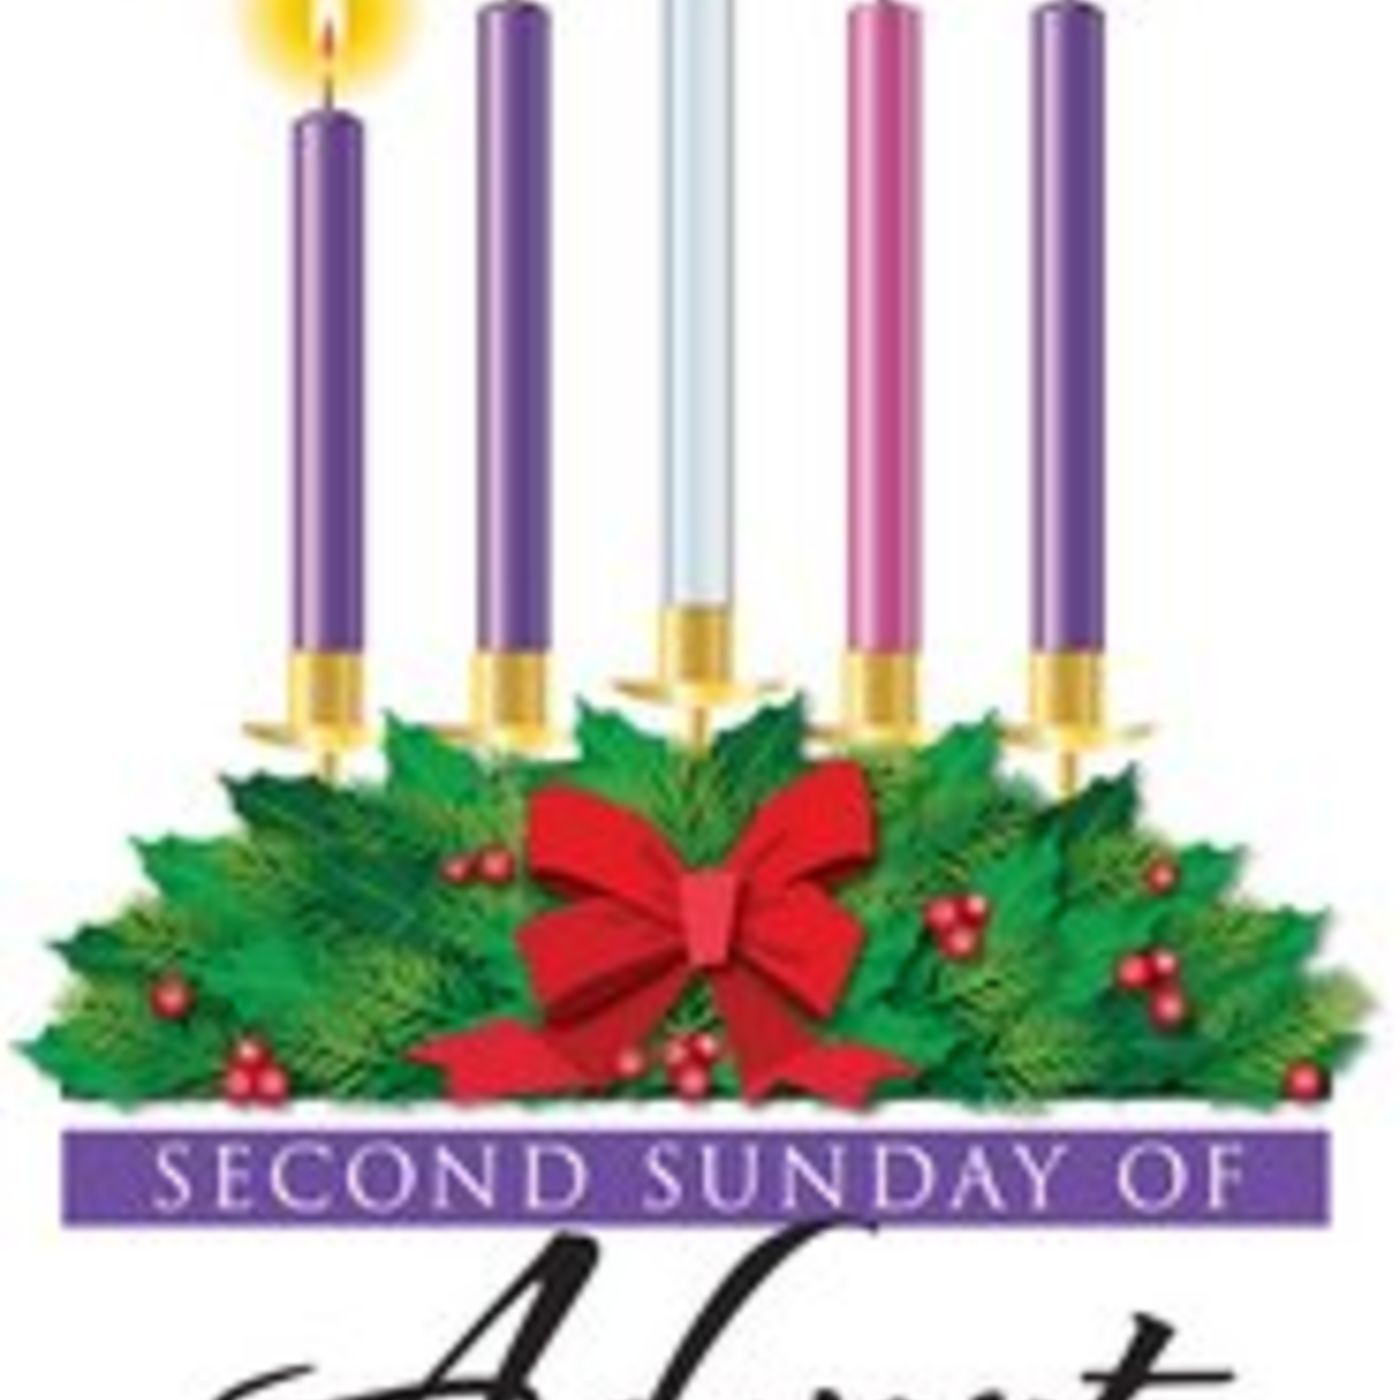 Second Sunday of Advent - Preparation